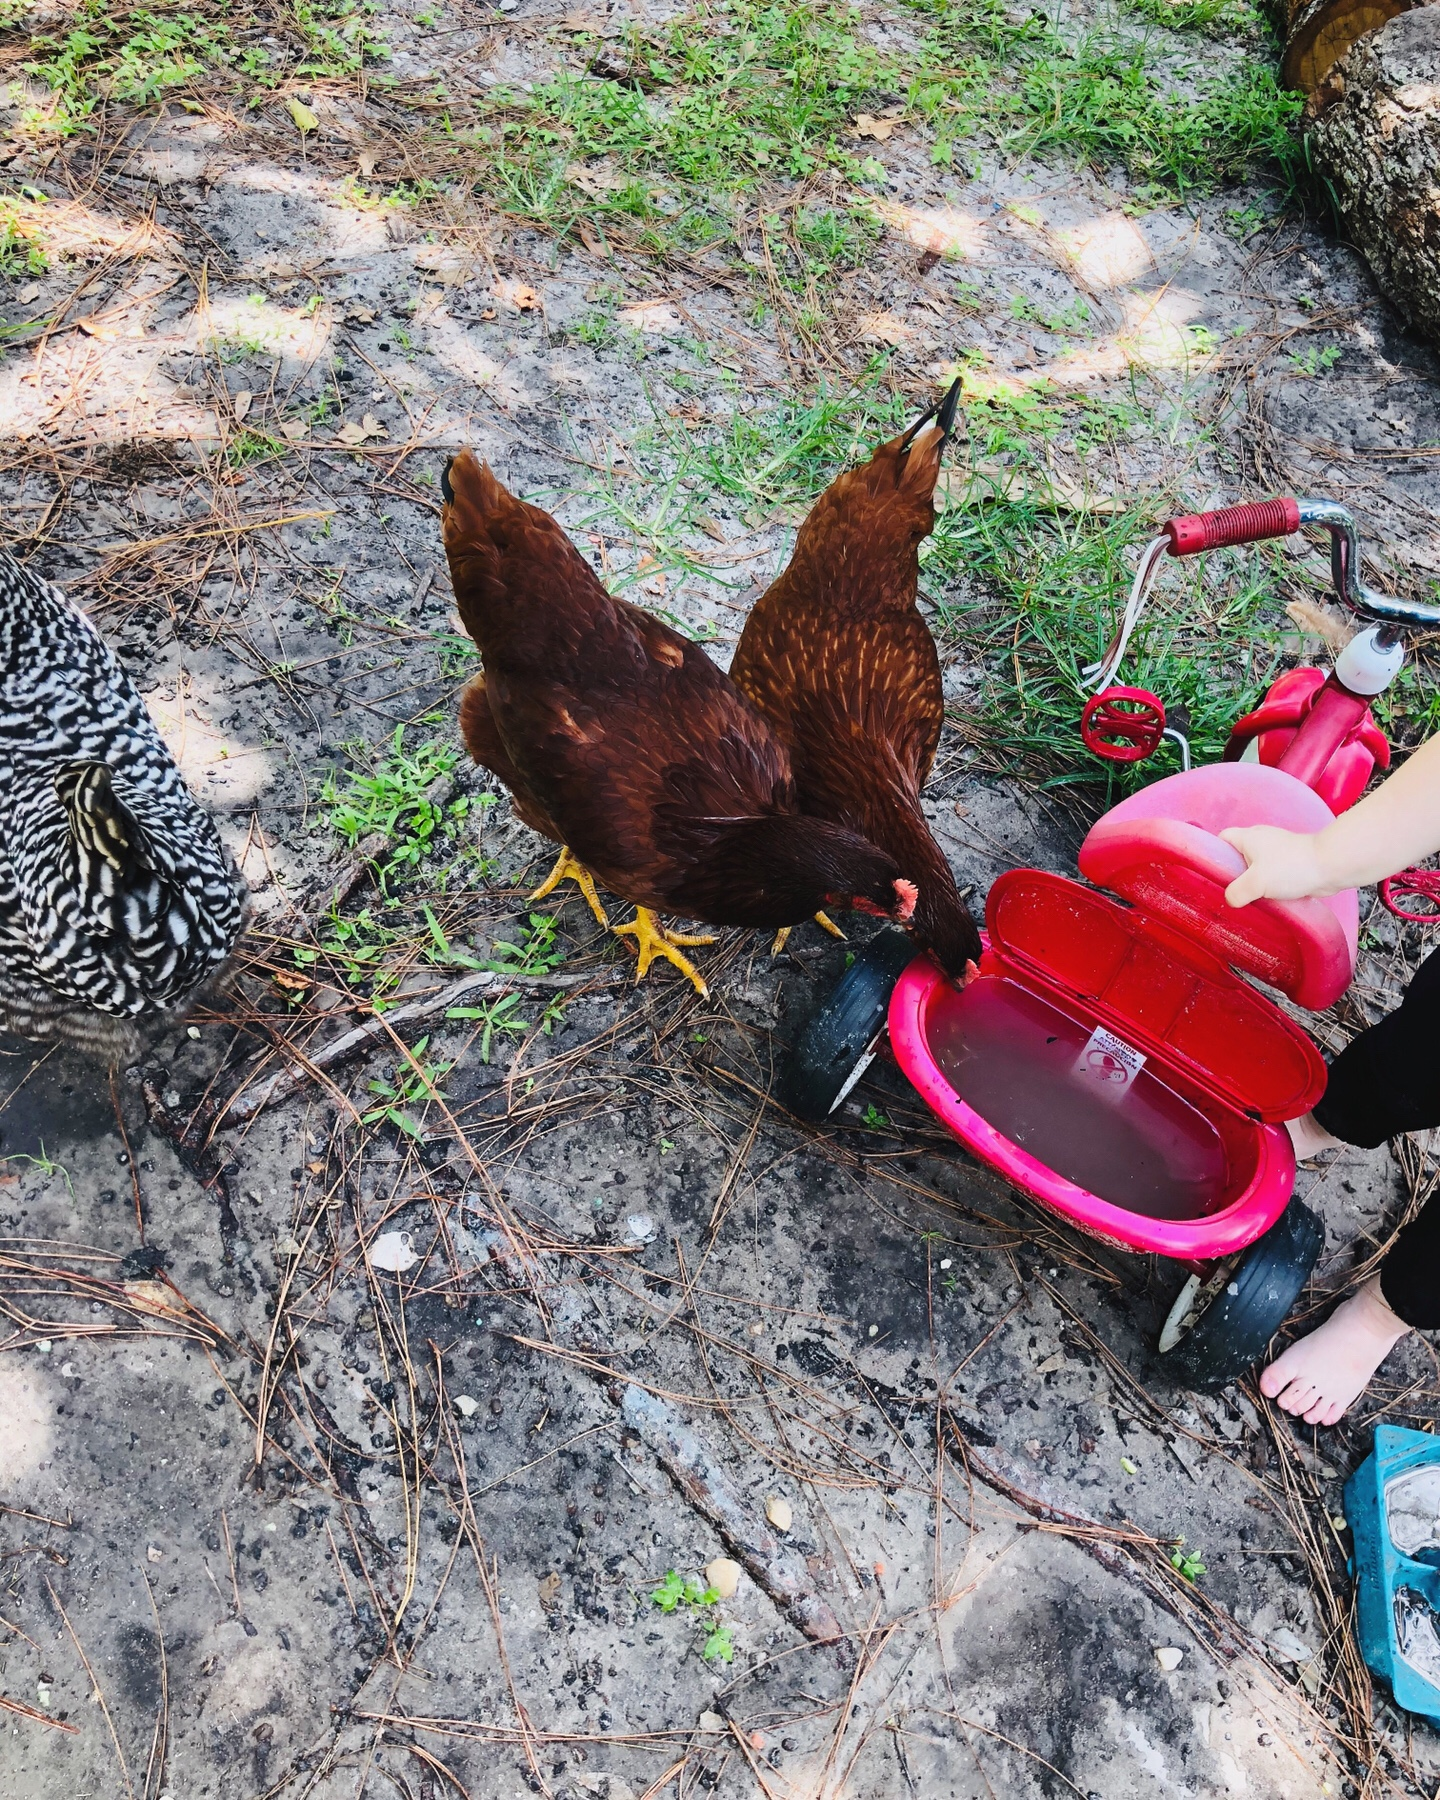 Free Range Chickens (mostly)